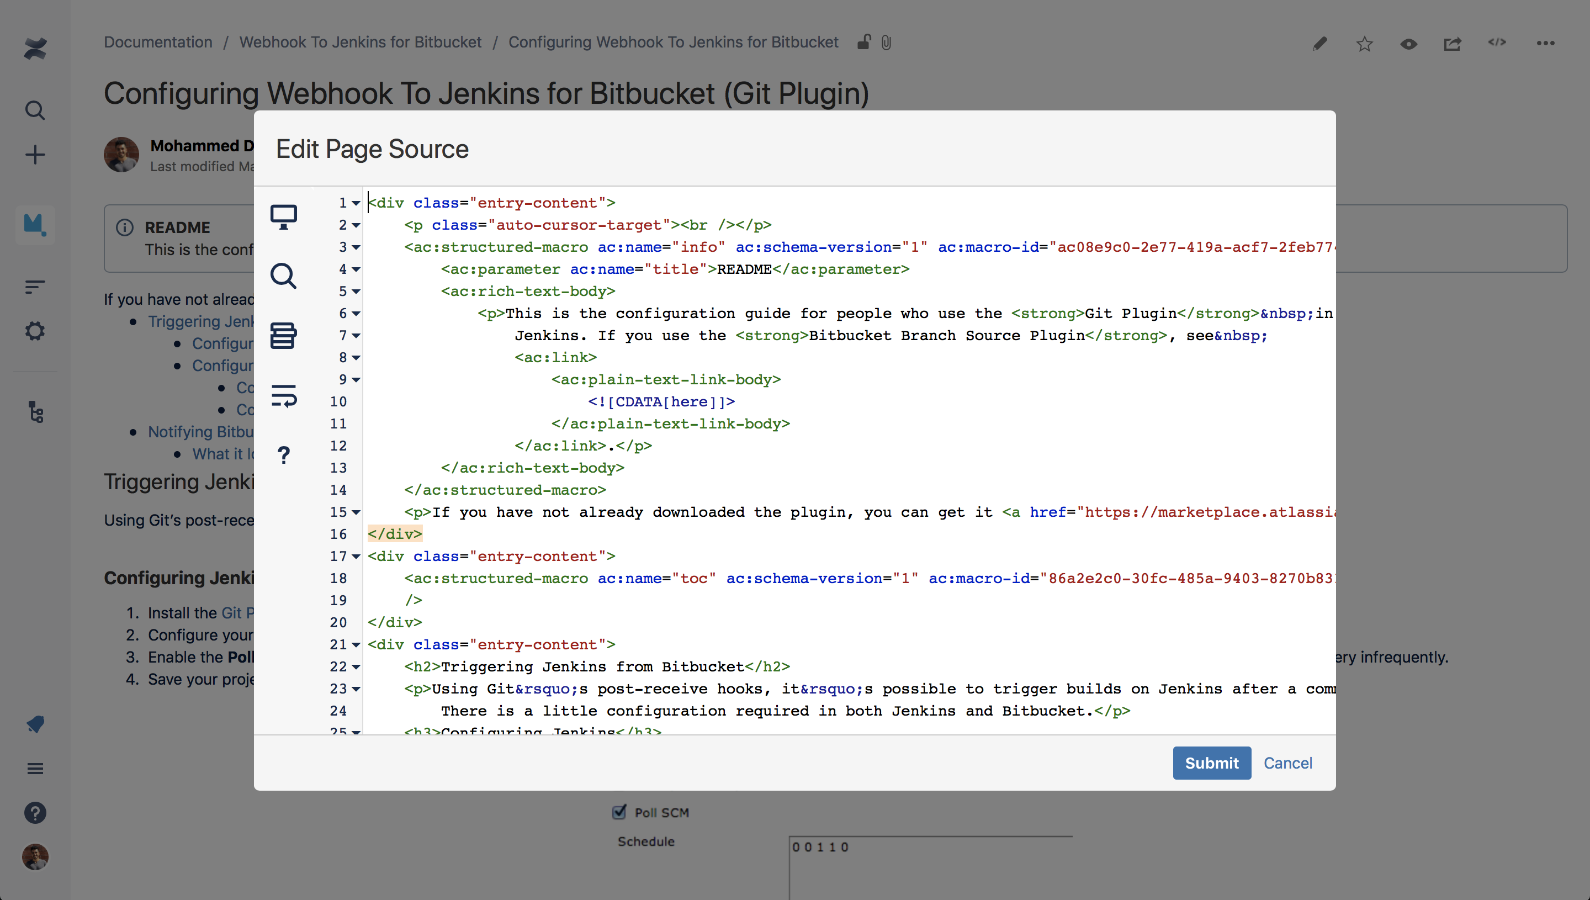 Source Editor for Confluence 3